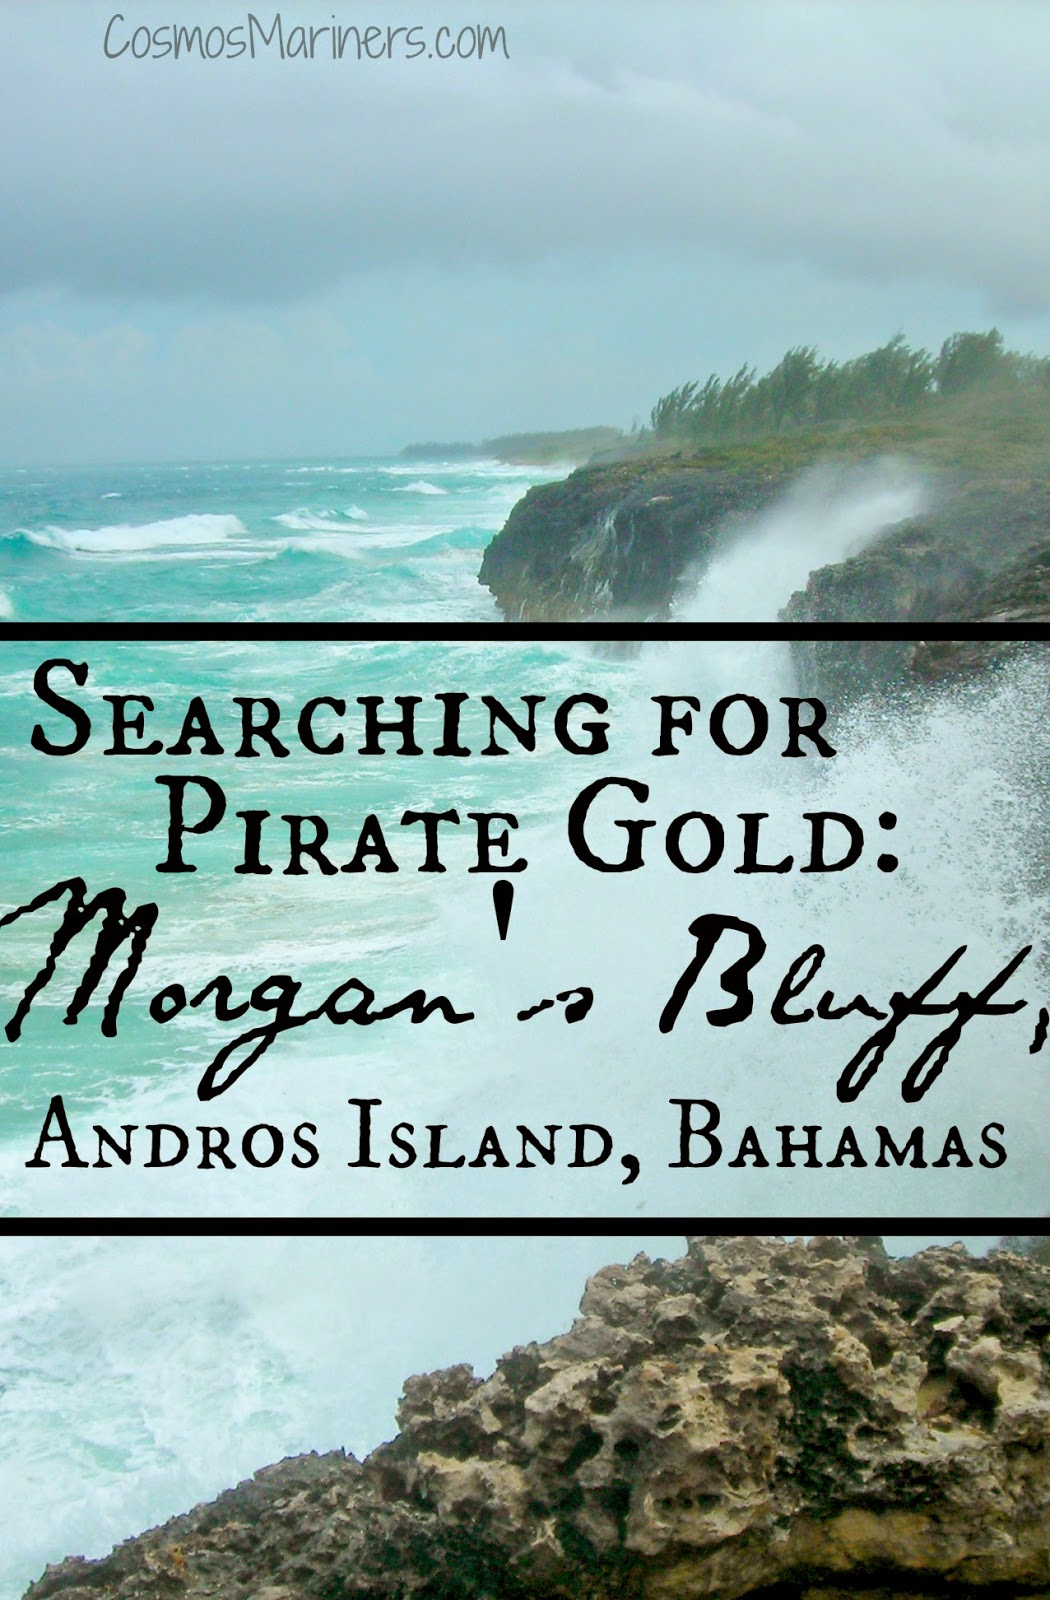 Searching for Pirate Gold at Morgan's Bluff, Andros Island, Bahamas | CosmosMariners.com